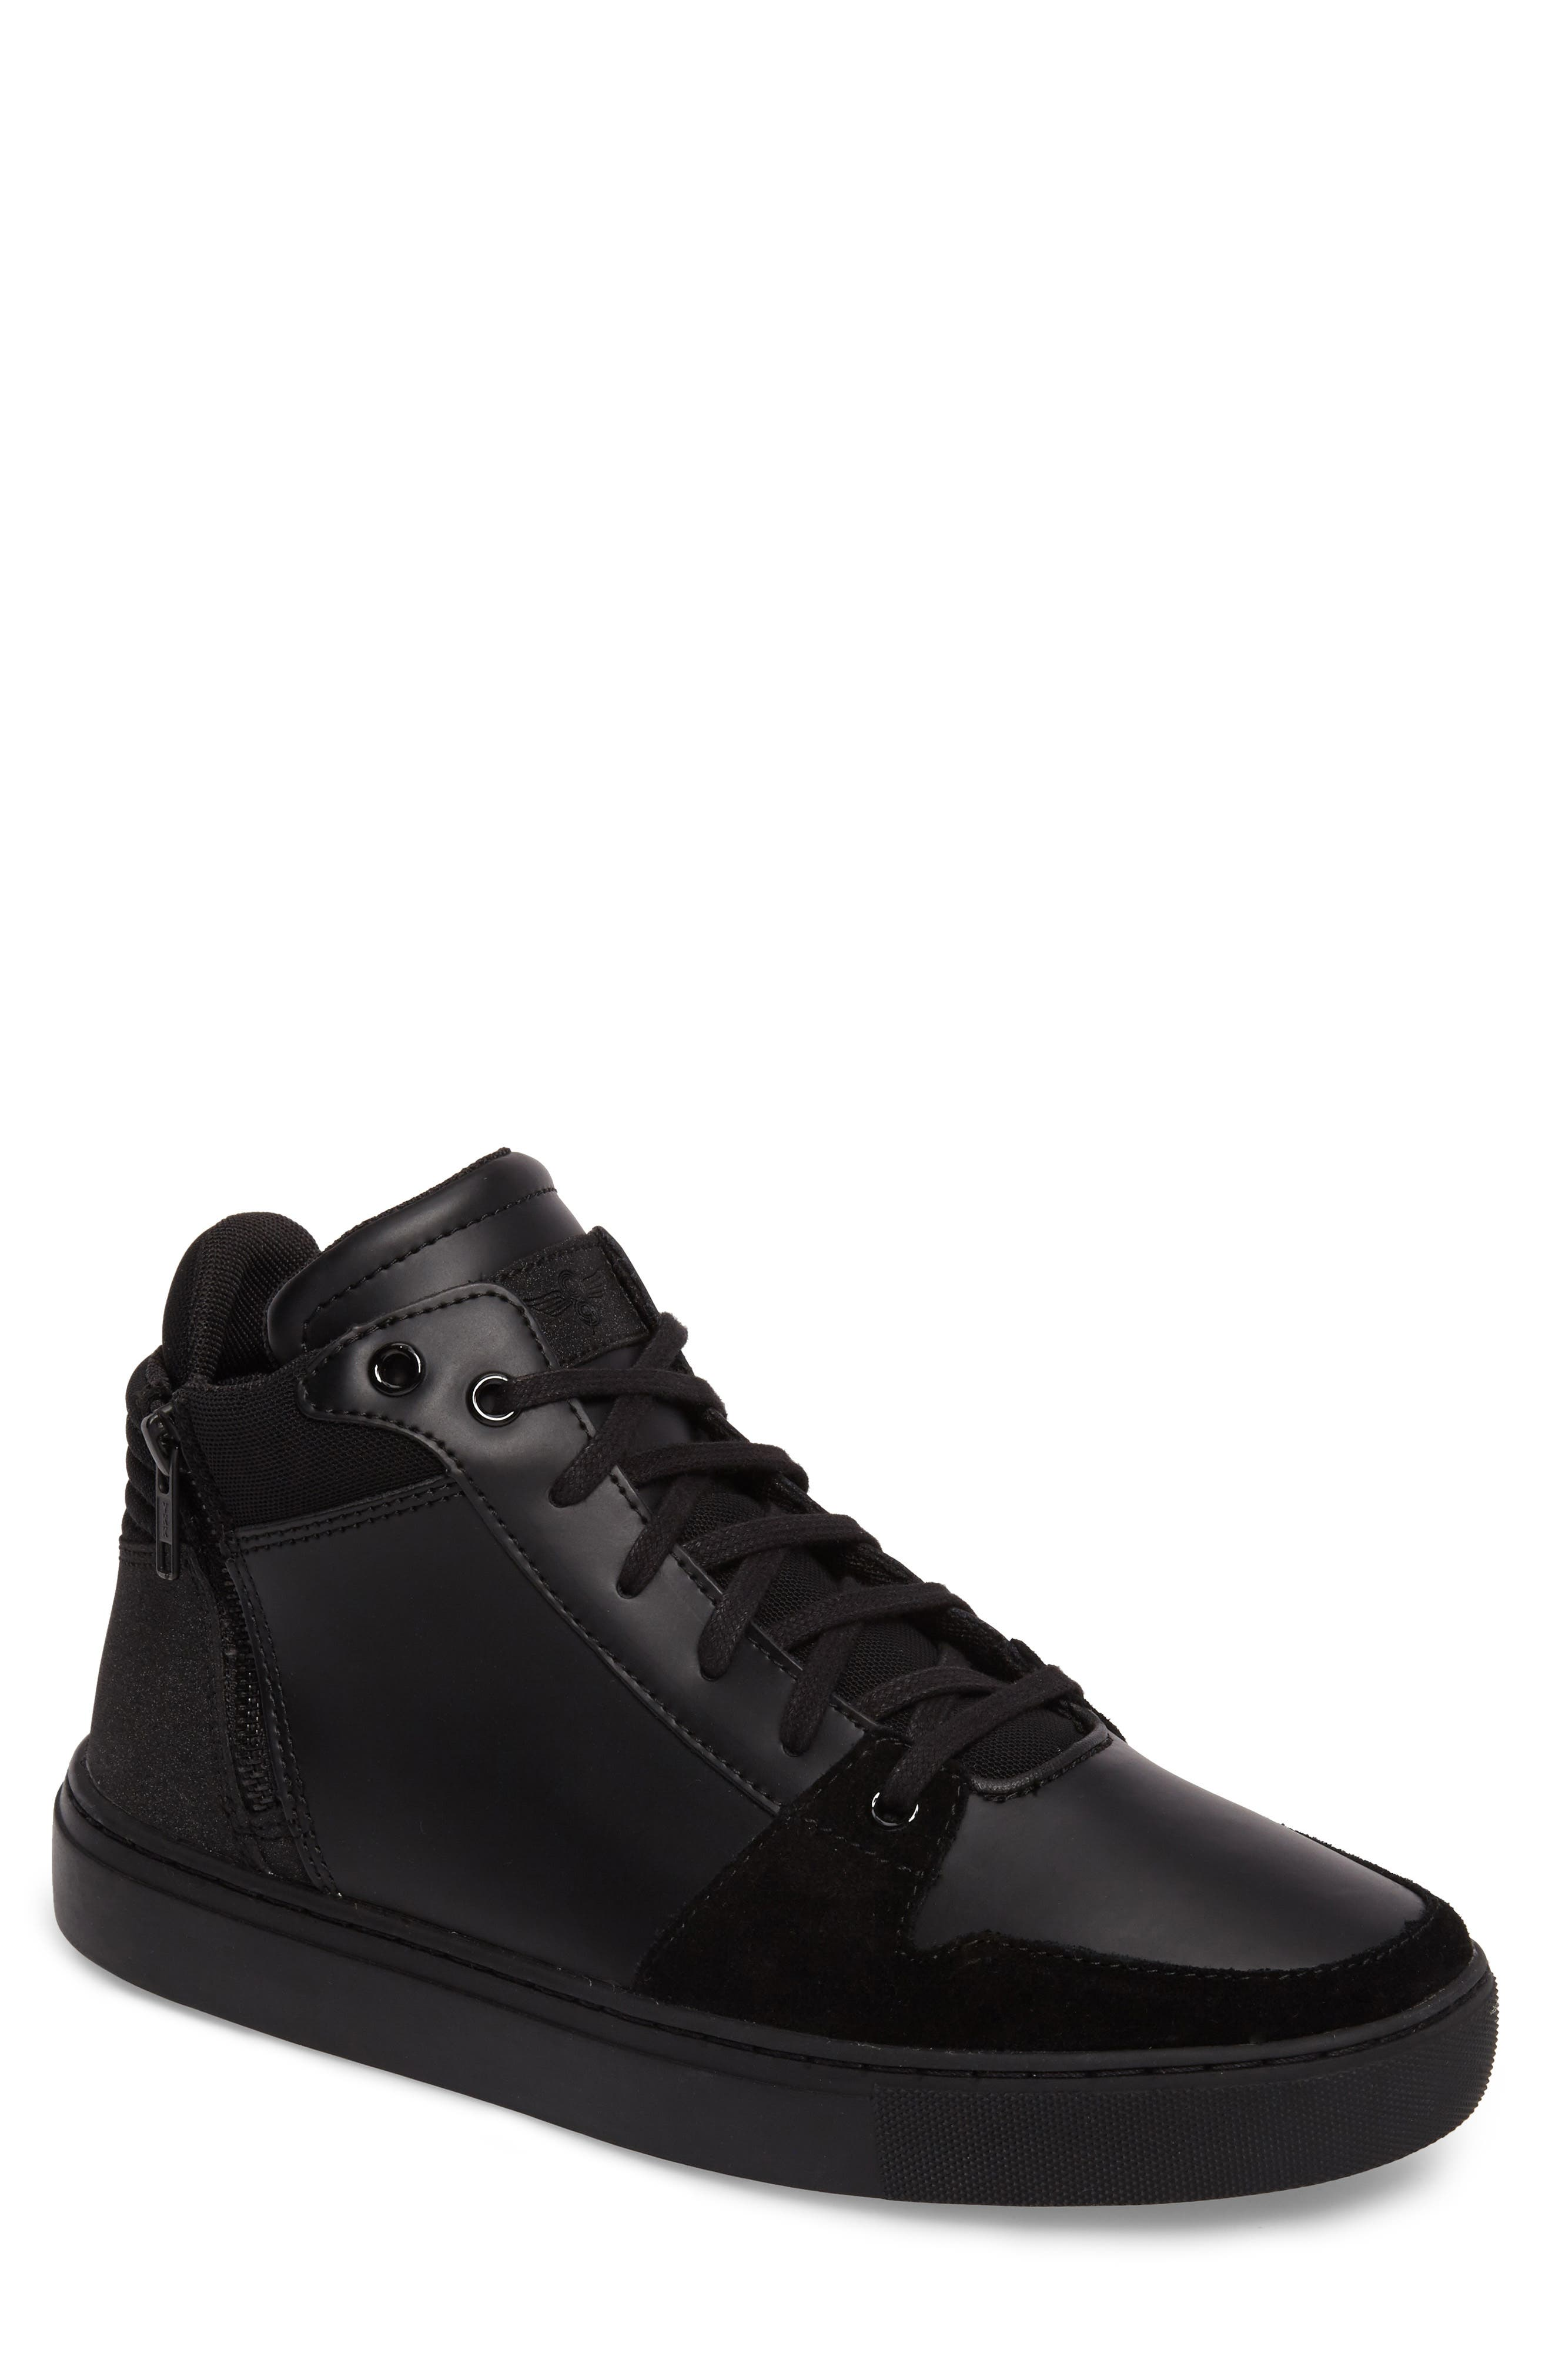 Creative Recreation Modena Sneaker (Men)